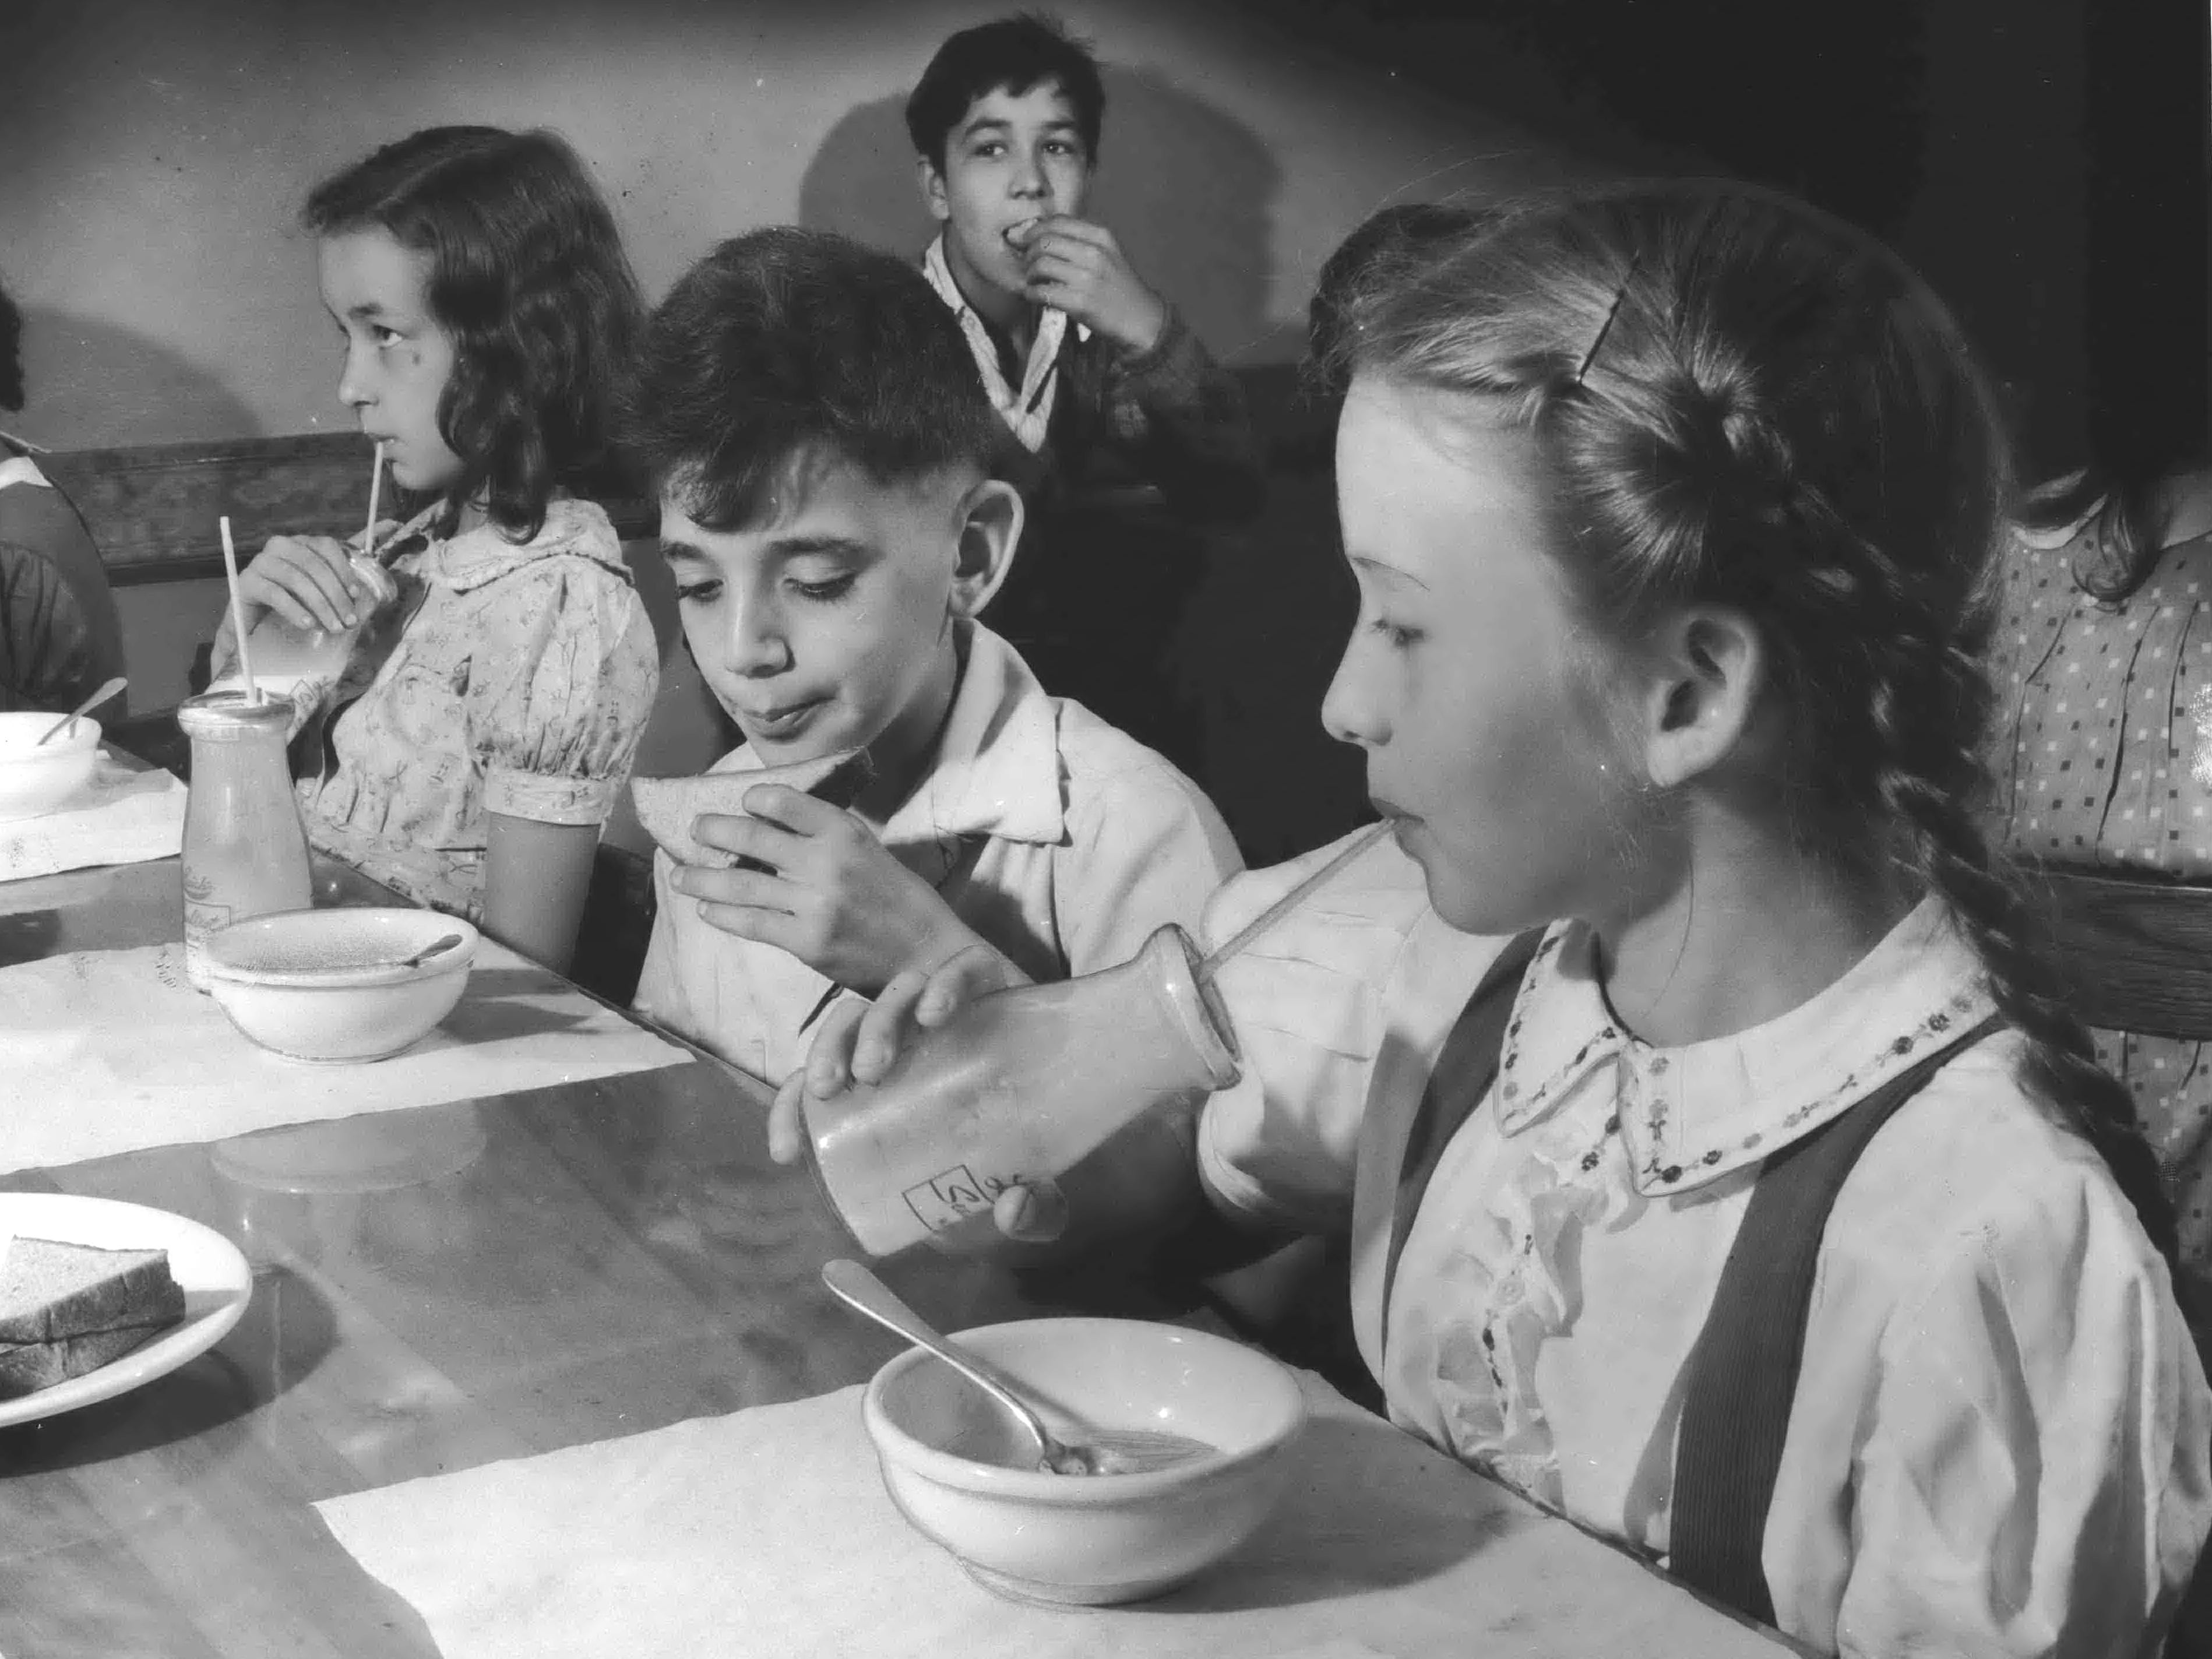 1942: With the Depression on the wane, milk found a new market when the first federal milk program for schools was implemented in two low-income neighborhoods, one in Chicago and the other in New York. The price to children was 1 cent per half pint. Children unable to pay were given milk for free. The penny milk program was also instituted in 32 public elementary schools in Milwaukee.